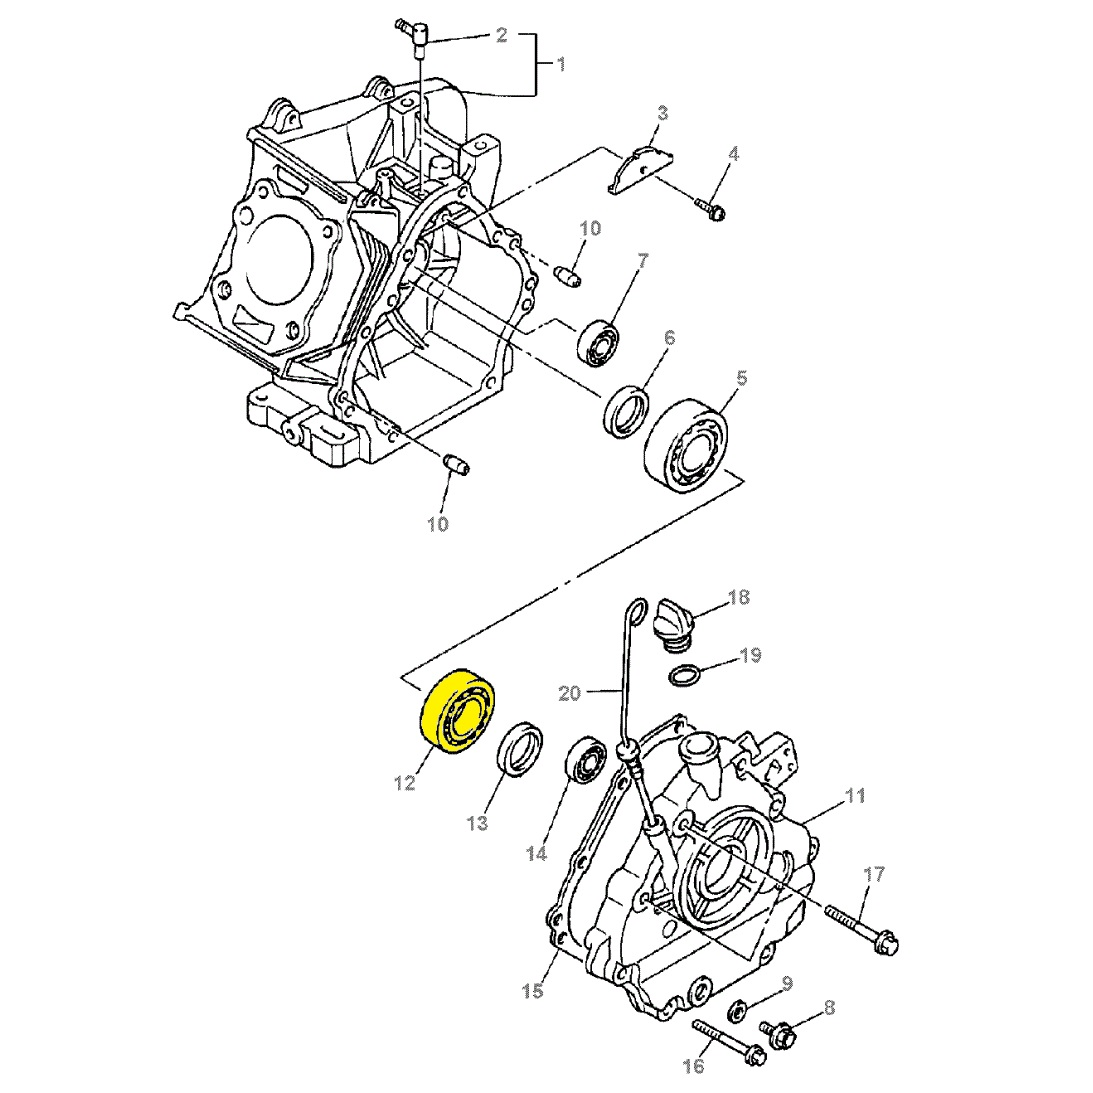 1996 Yamaha G11 Golf Cart Wiring Diagram Gas. Diagram